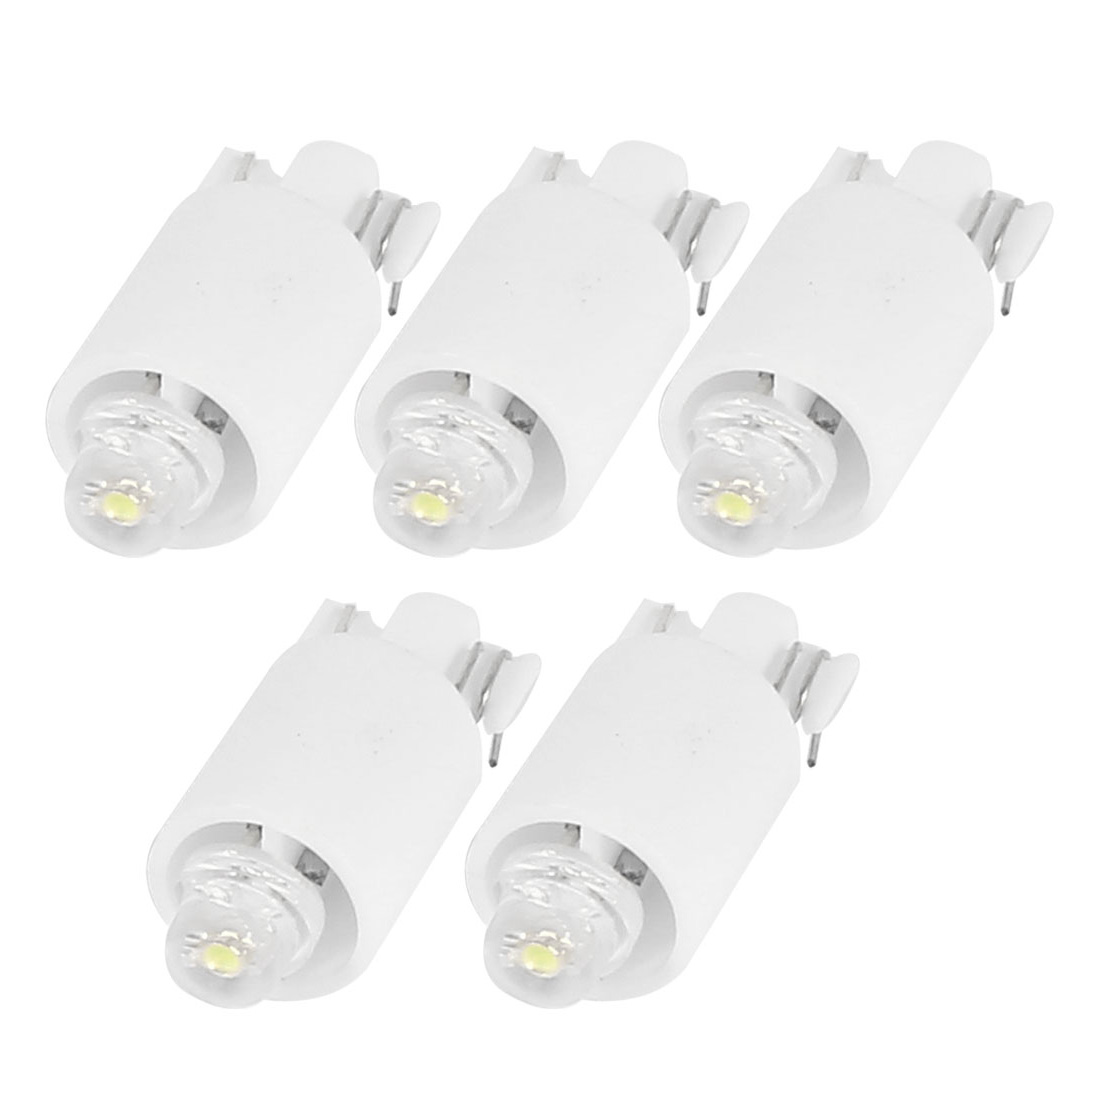 5 Pcs Car Vehicle T10 W5W White LED Light Dashboard Bulb Lamp DC 12V 20mA